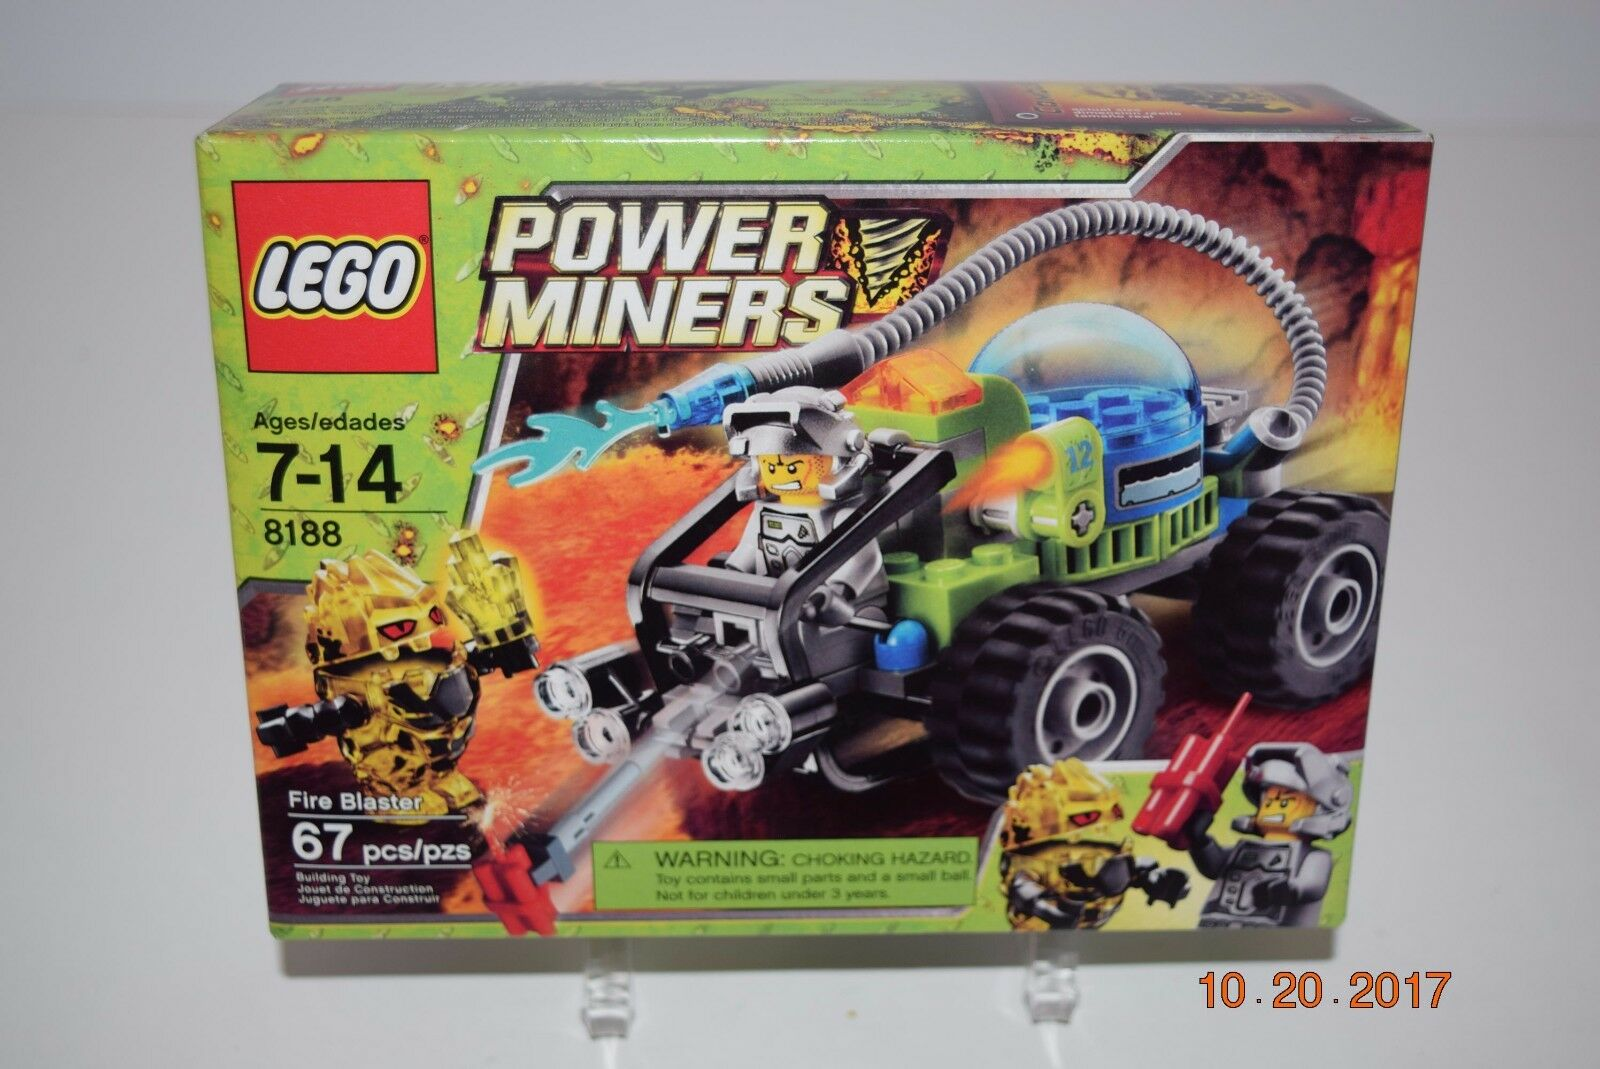 Lego Power Miners 8188  Fire Blaster  Age 7+, Sealed, Retirot    NEW